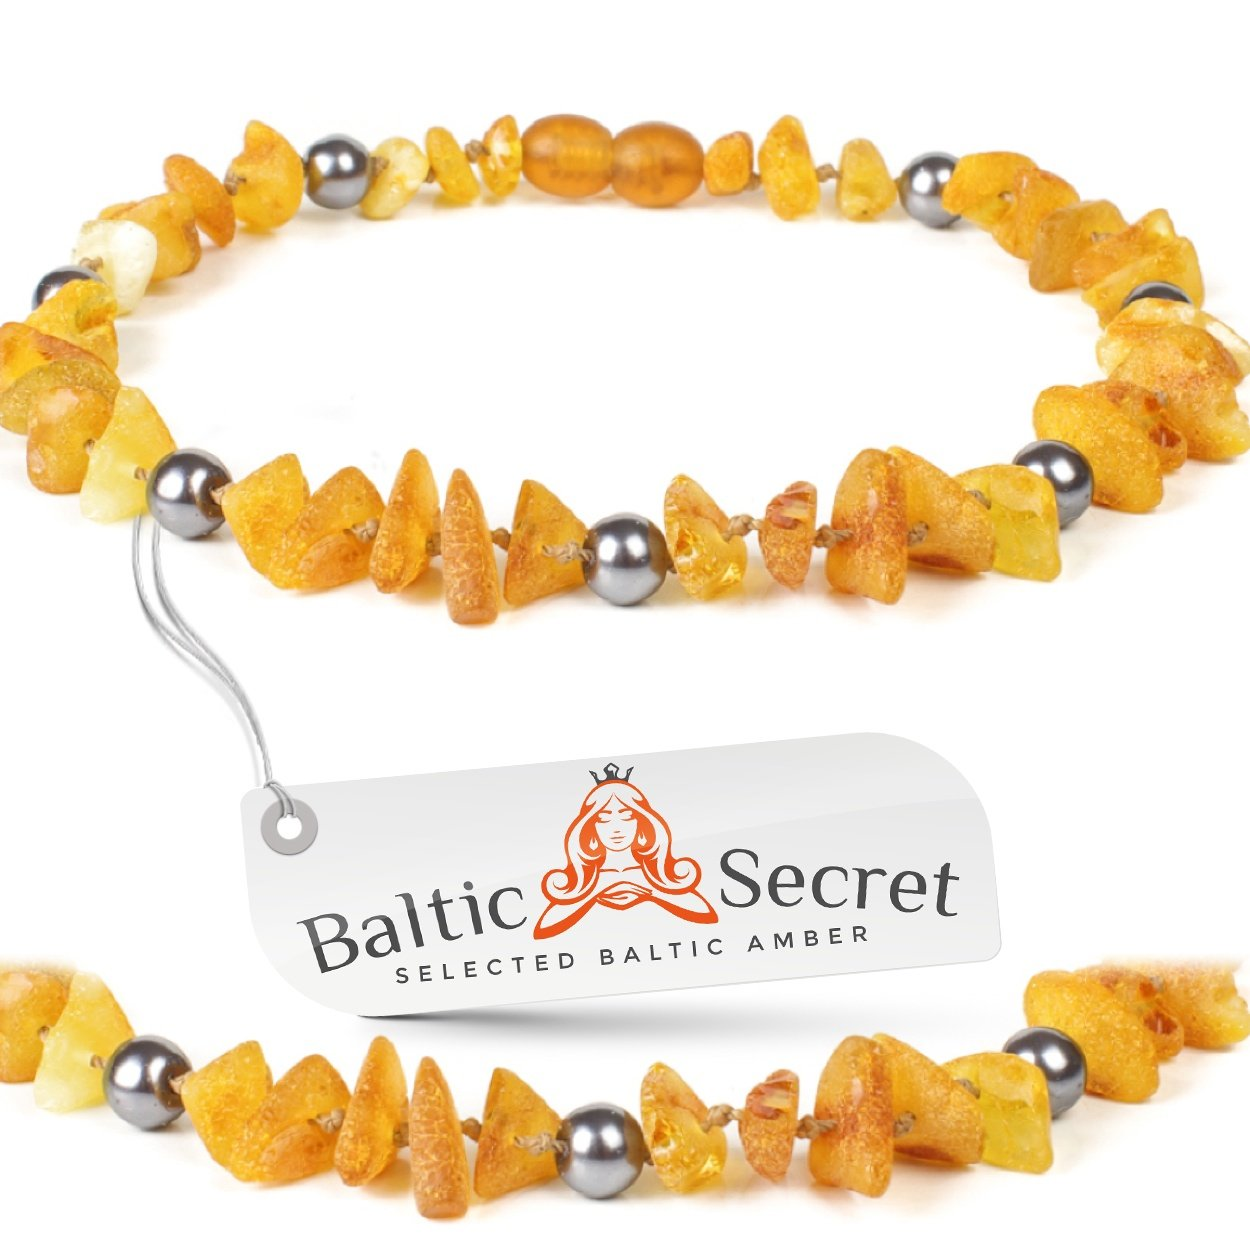 Amber Dog Collar X Small / Amber Cat Collar, made of Premium Raw Baltic Amber Gems That are 50% Richer and More Effective / 7.9/20pGRY